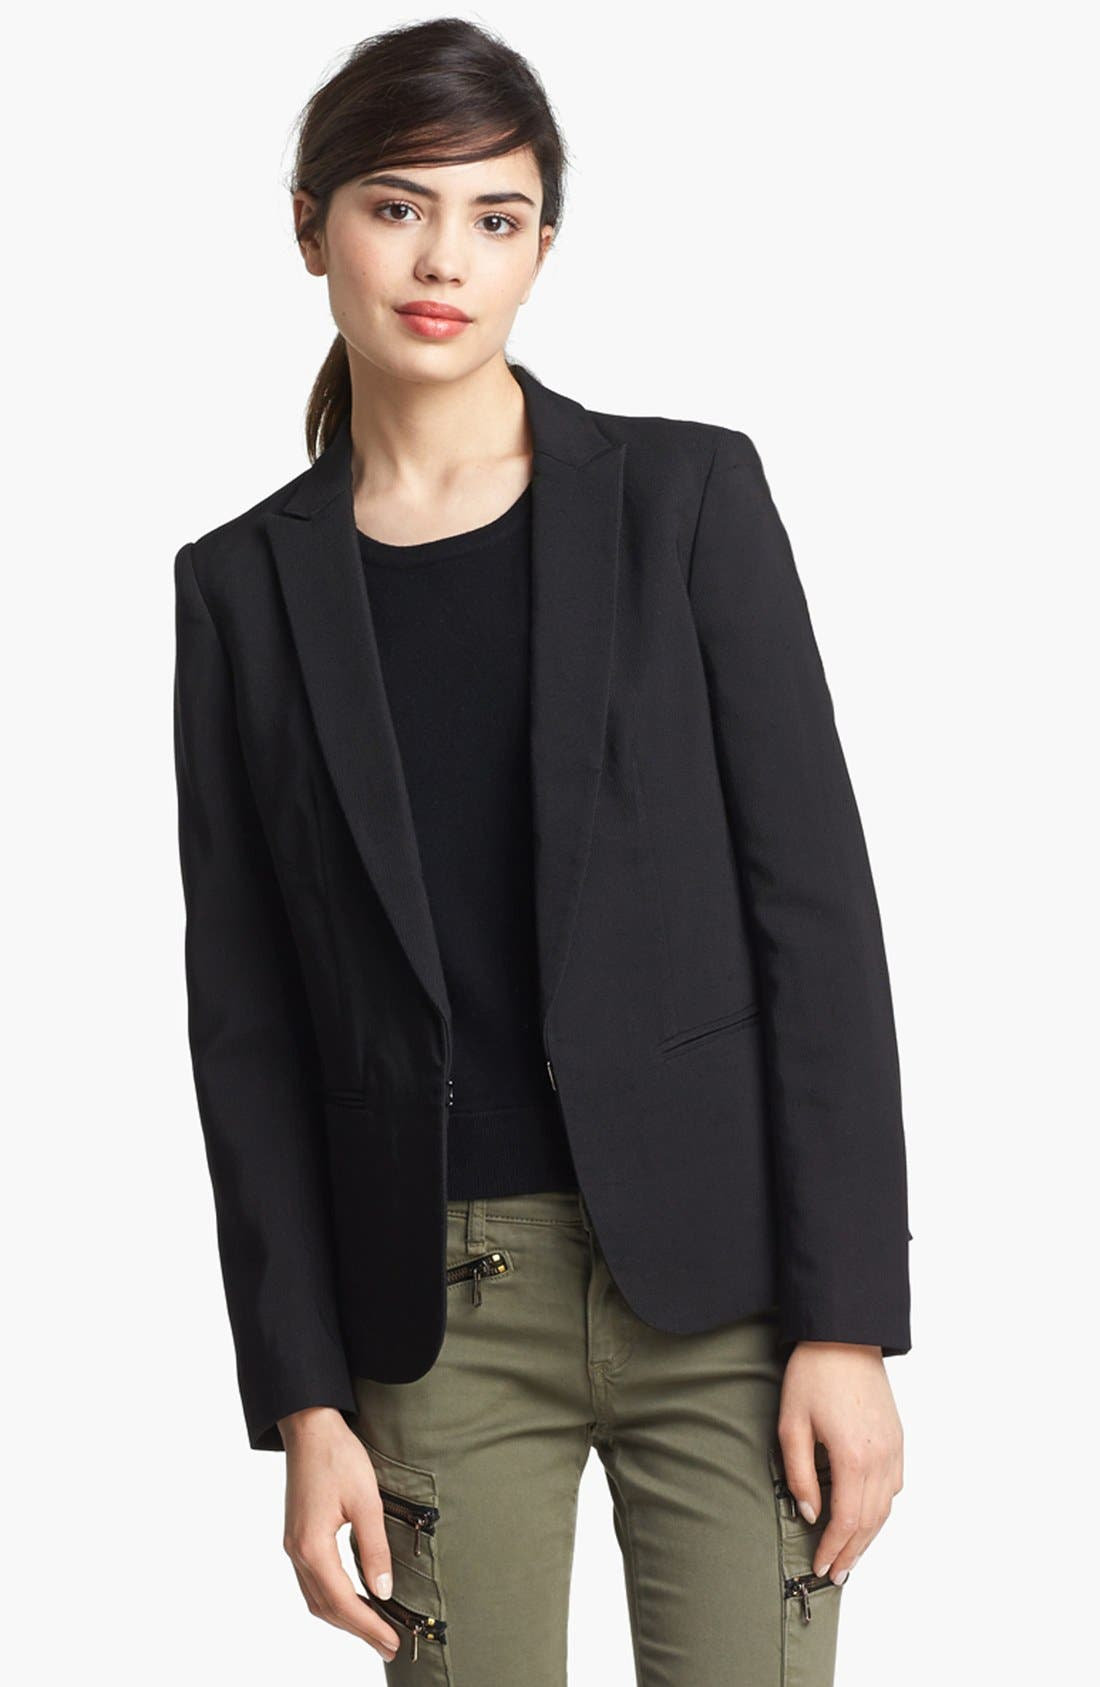 Alternate Image 1 Selected - rag & bone 'Lillian' Lace-Up Back Blazer